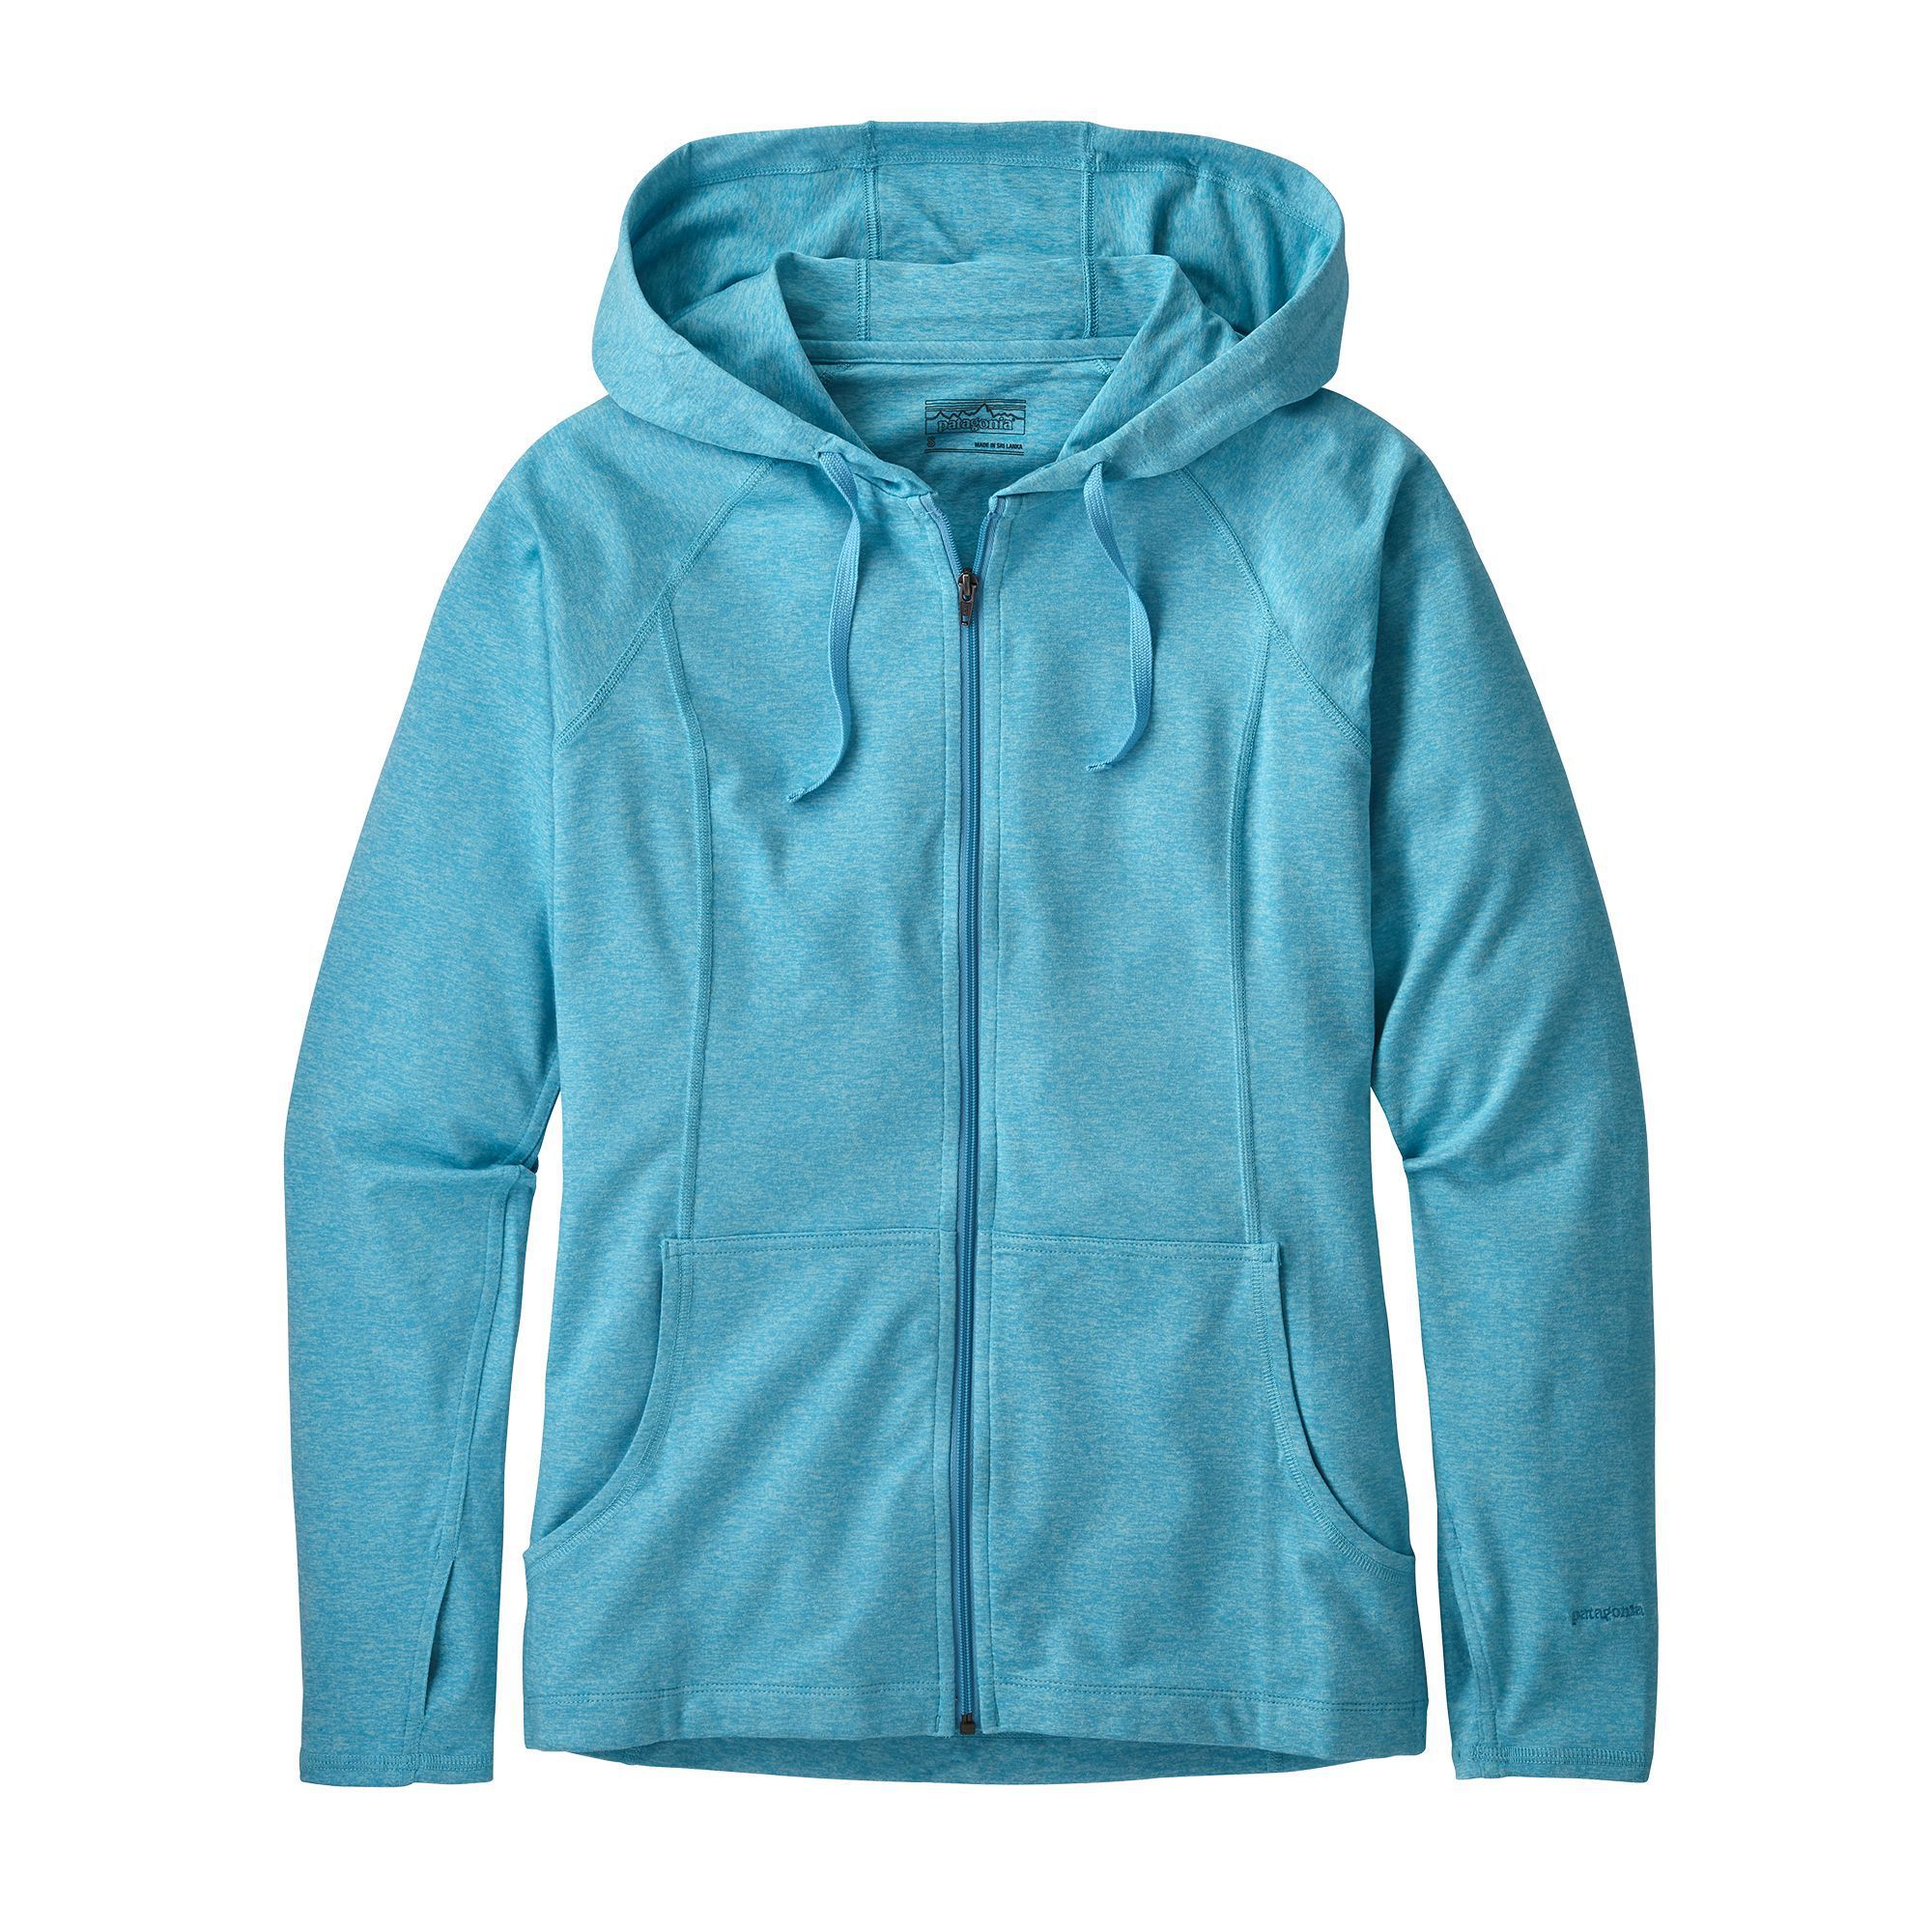 Seabrook Hoody Patagonia patagonia.com $89.00 SHOP NOW Every piece of clothing Patagonia designs is made with natural and recycled fabrics, including organic cotton, recycled down (collected from old bedding and furniture), recycled wool, among others. The brand also donates one percent of sales to help boost grassroots organizations.